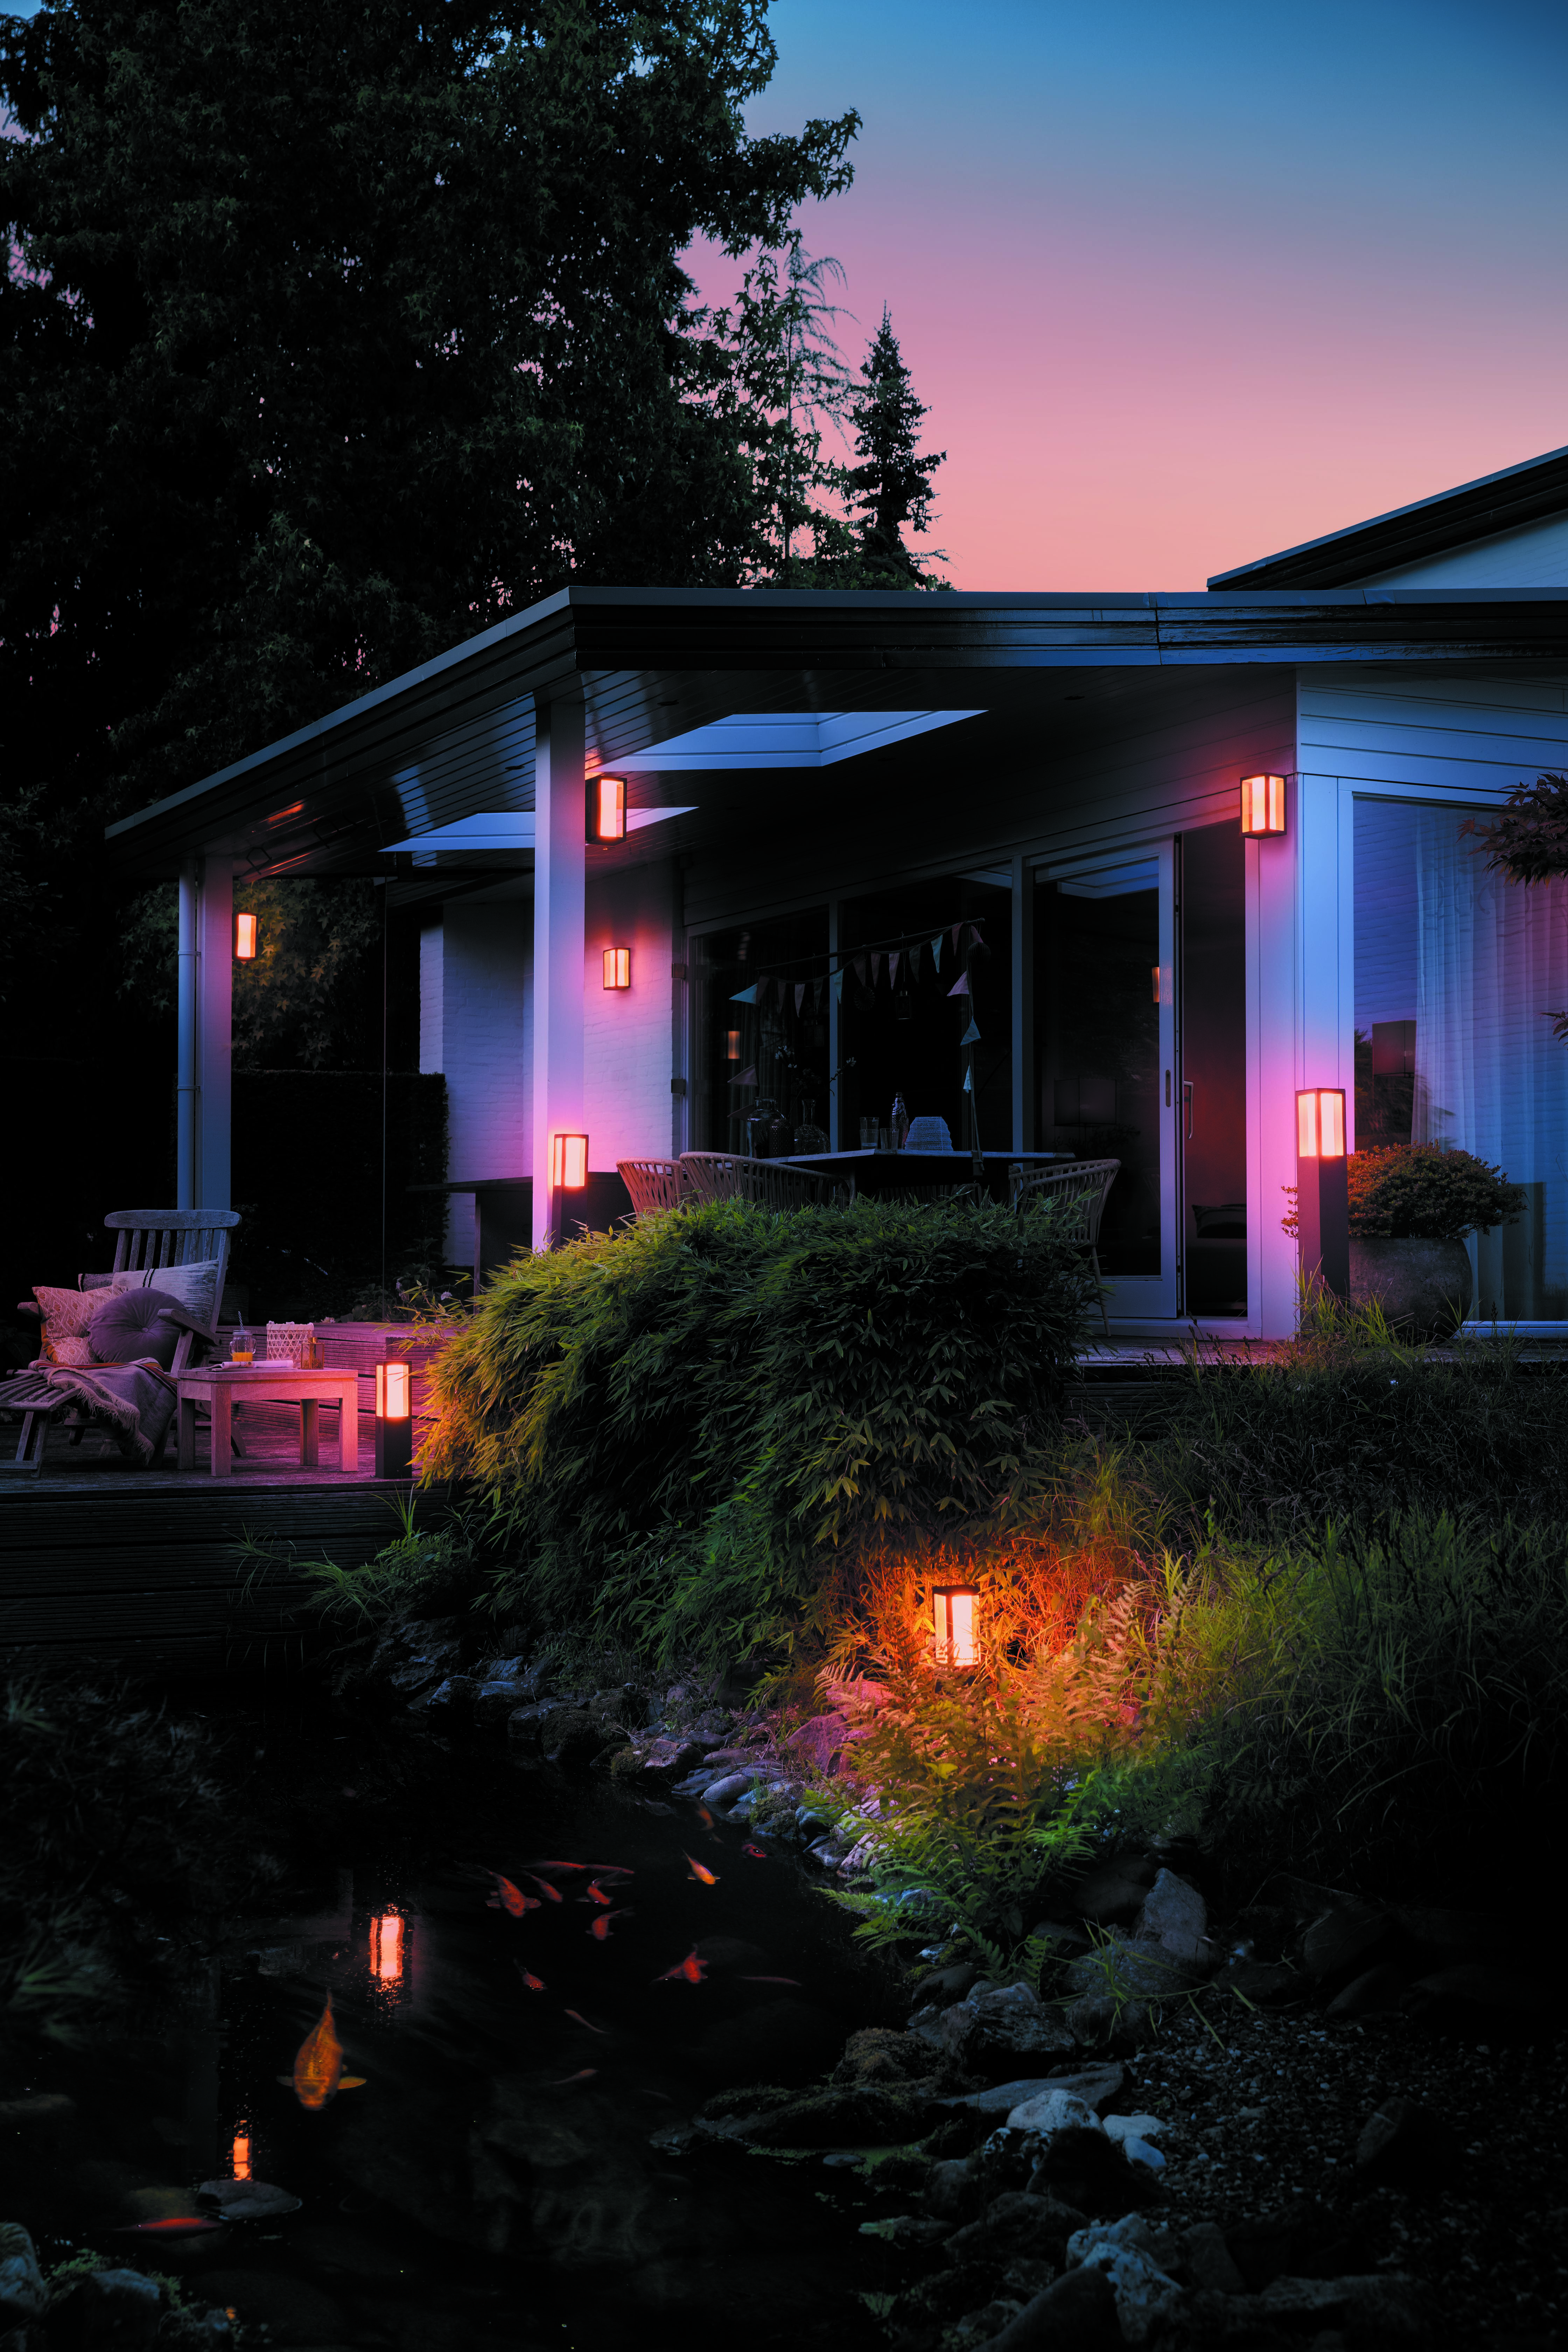 sale retailer 362e6 ef335 Philips Hue extends Outdoor range | Signify Company Website